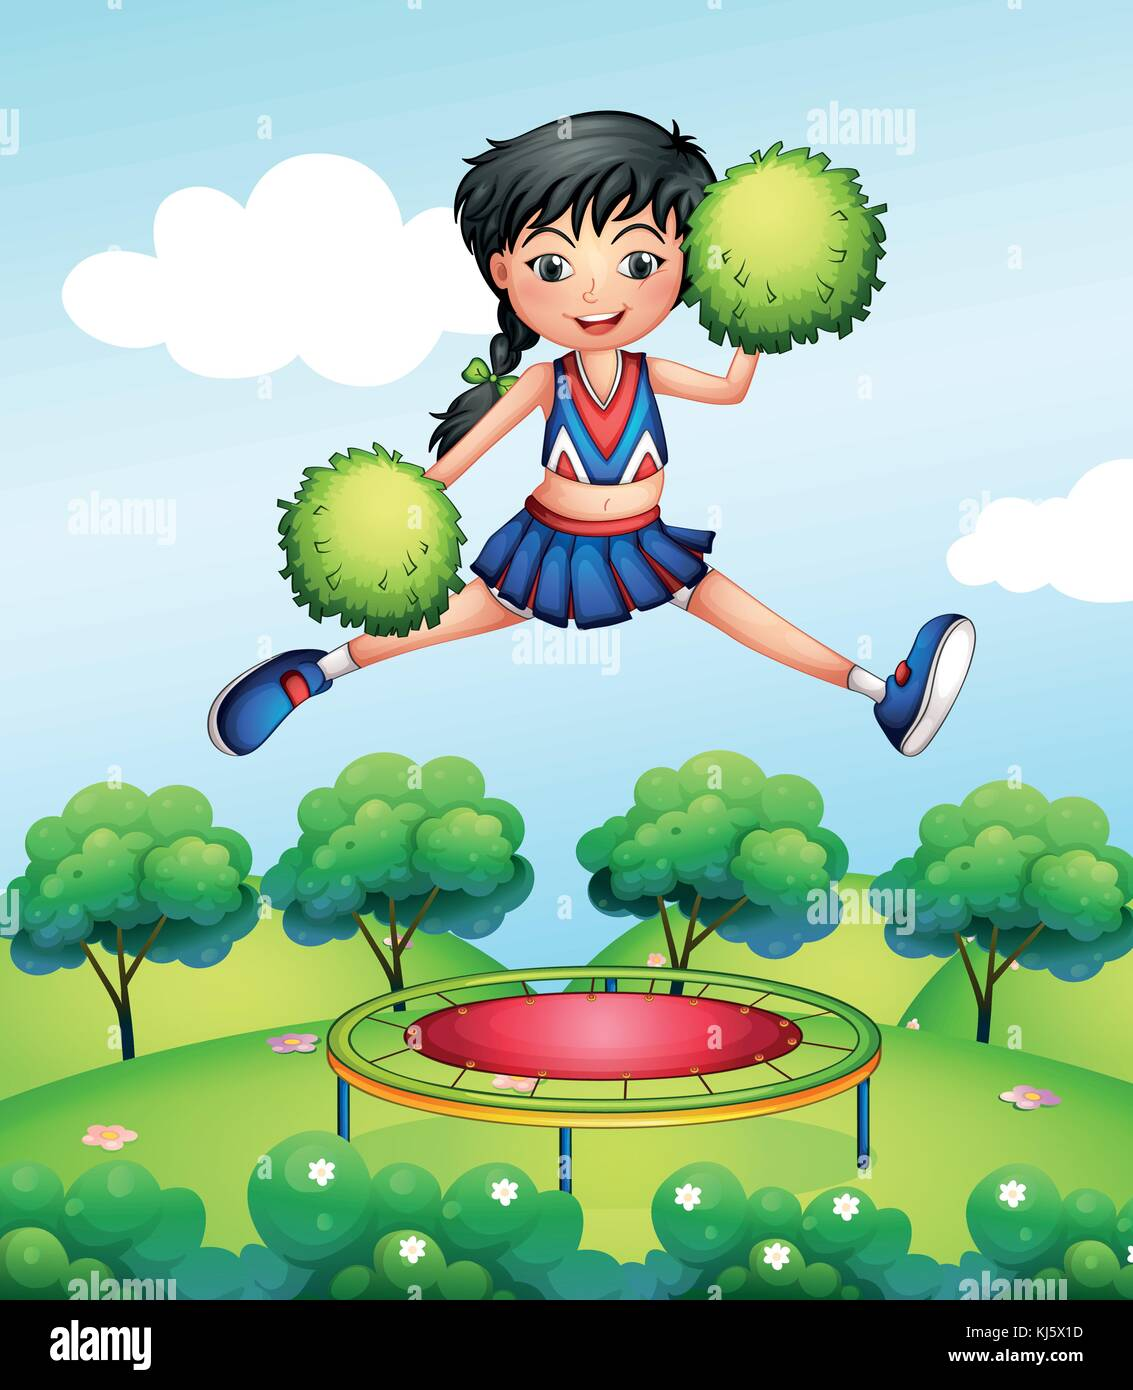 Illustration of a cheerleader jumping with her green pompoms above a trampoline - Stock Vector